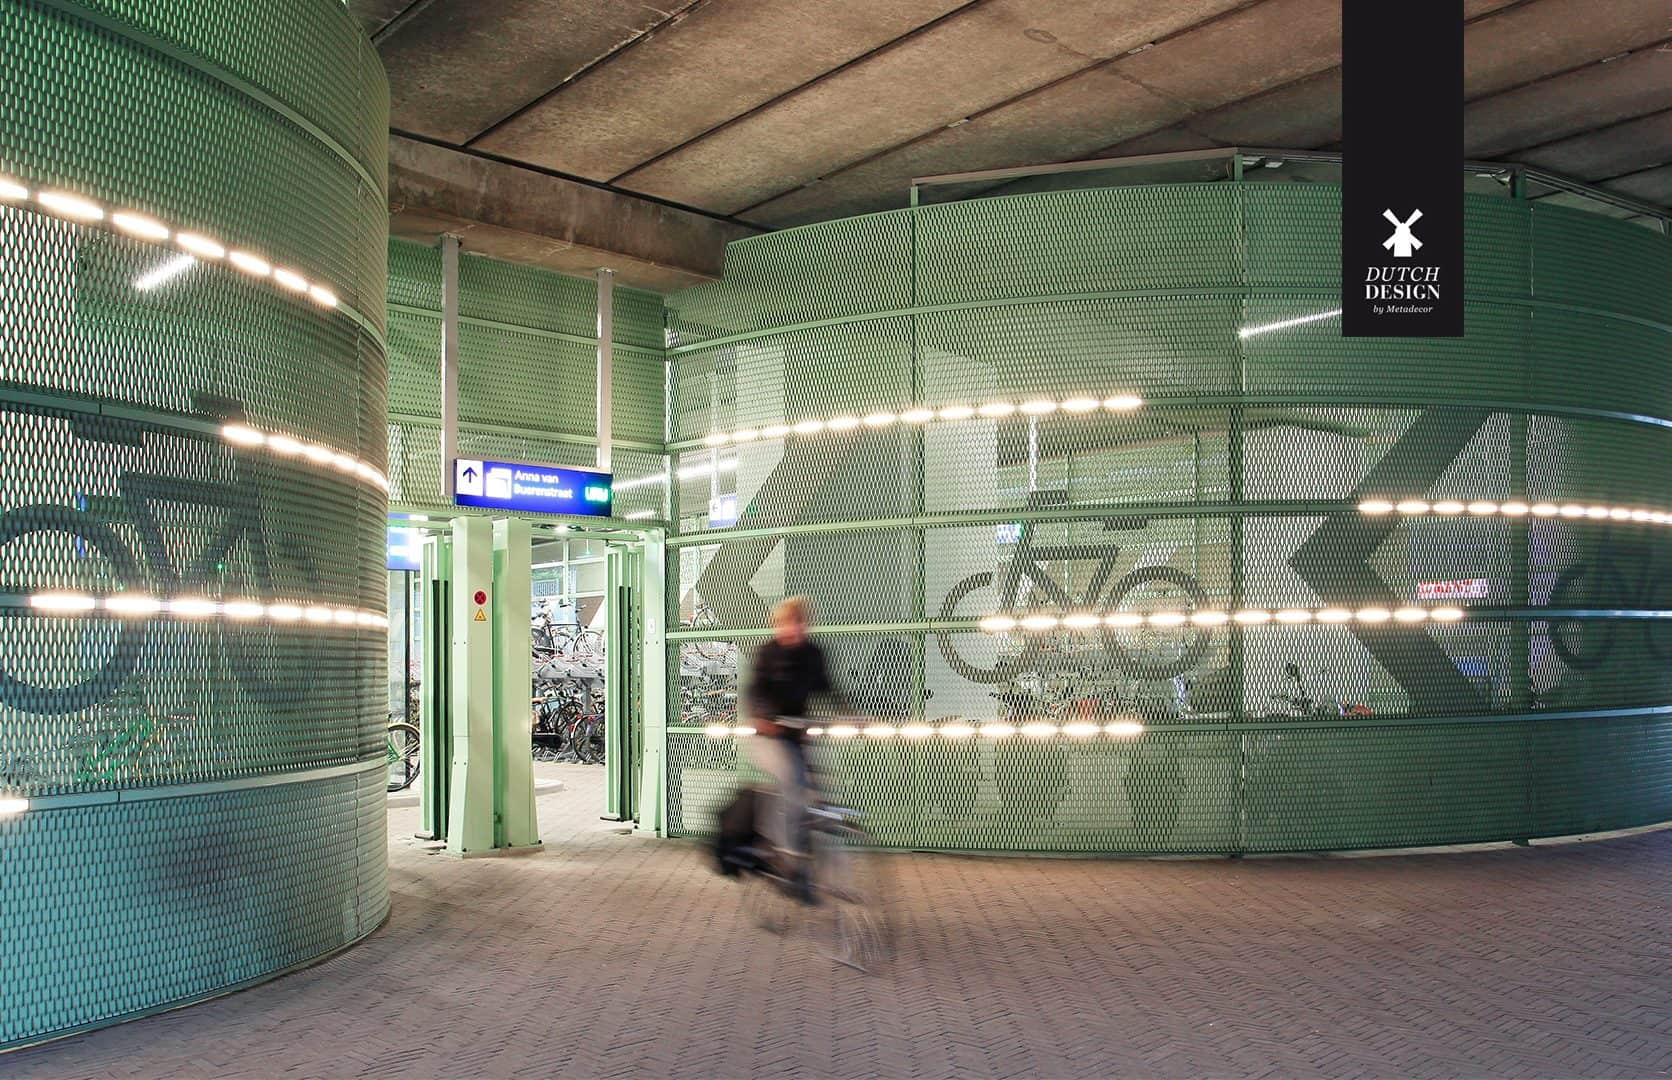 DDBM - Bycycle Parketing Den Hague The Netherlands cladding expanded metal